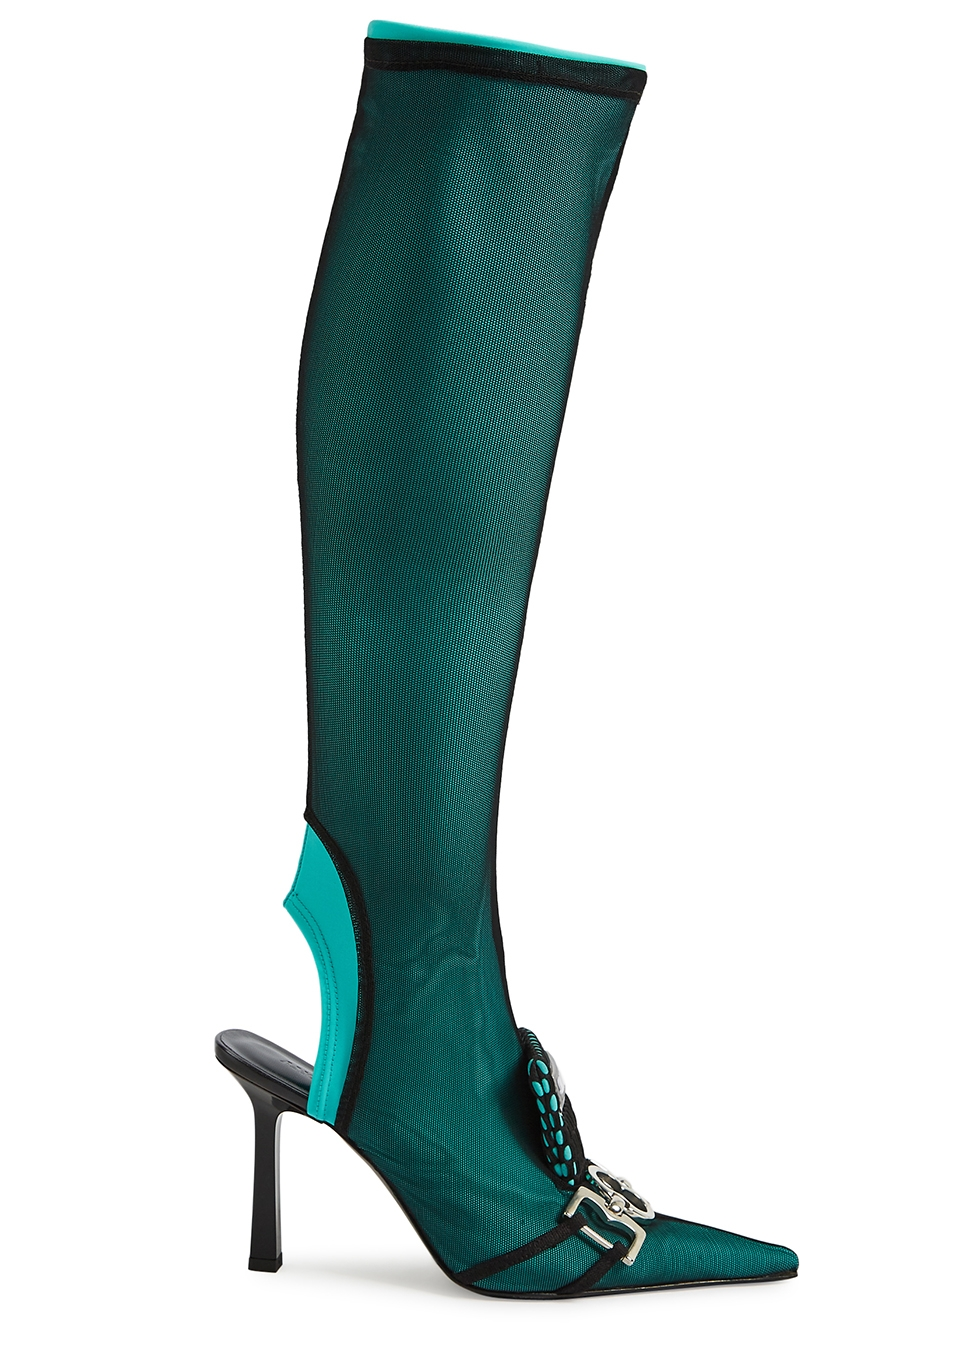 100 turquoise knee-high sock boots